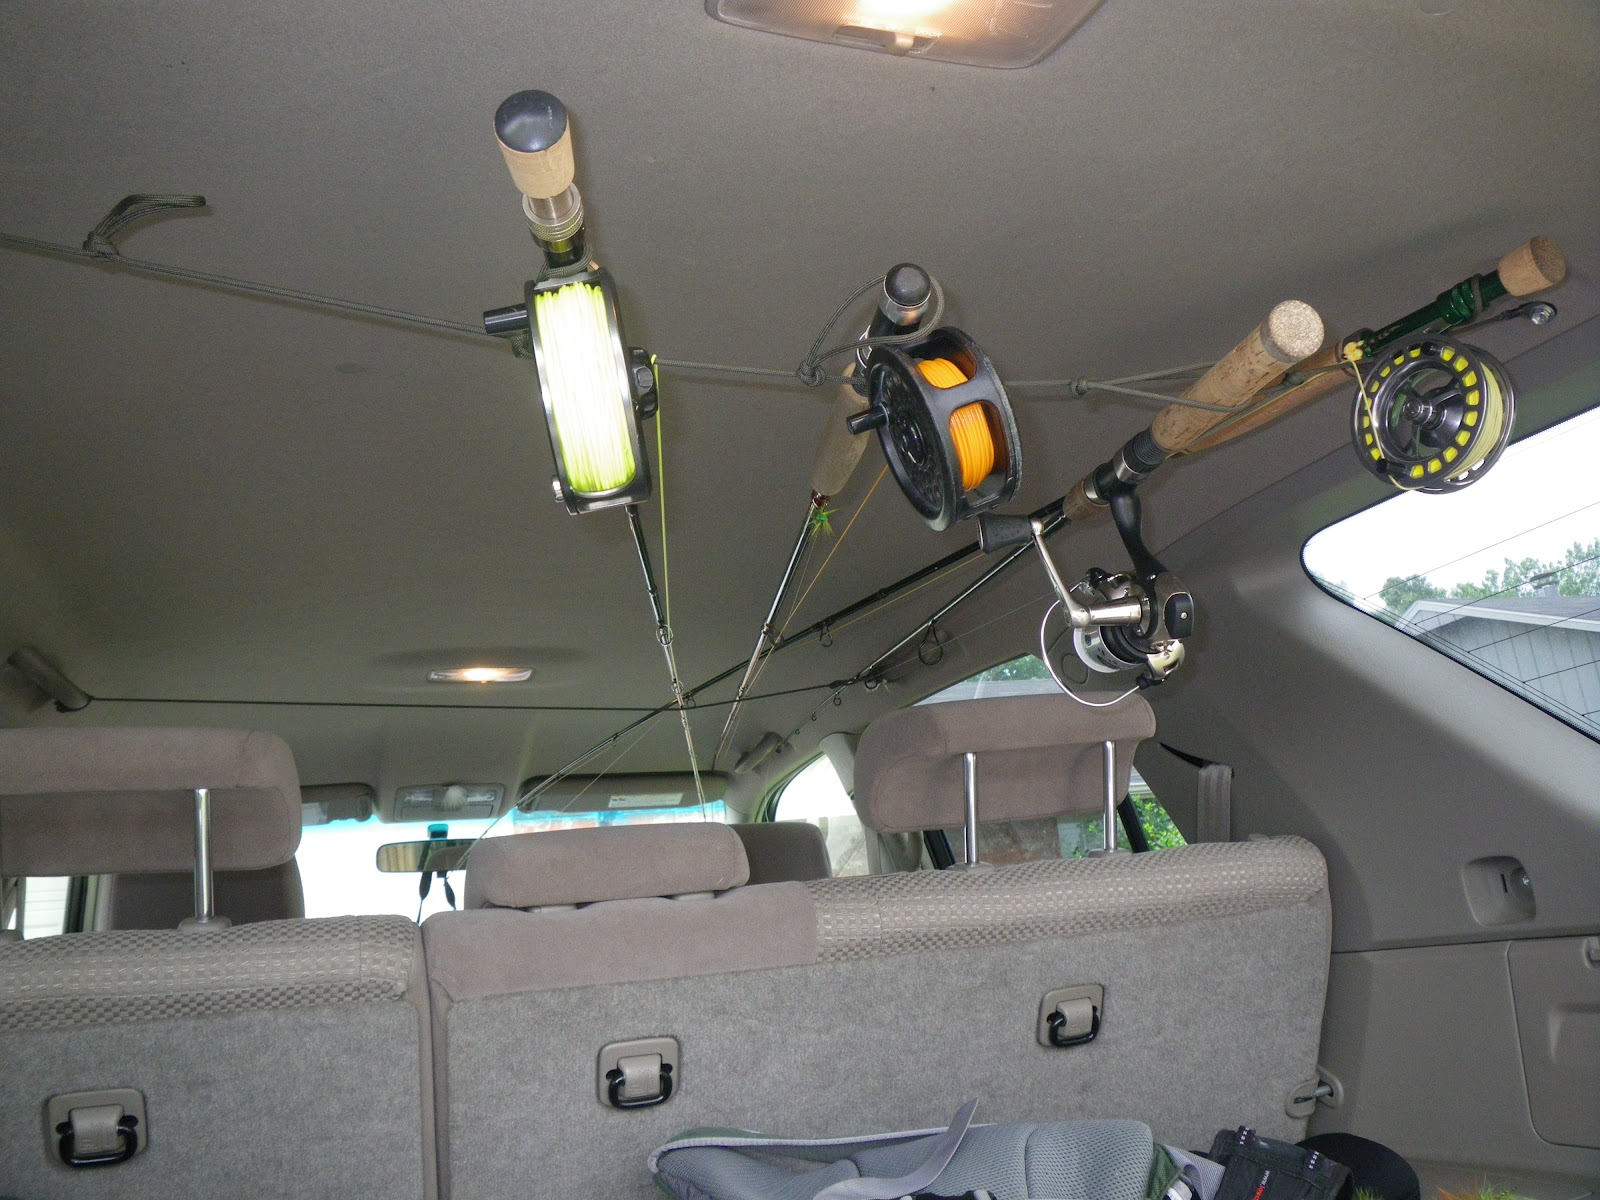 Fly in the south diy redneck rodrack for your suv for Suv fishing rod holder